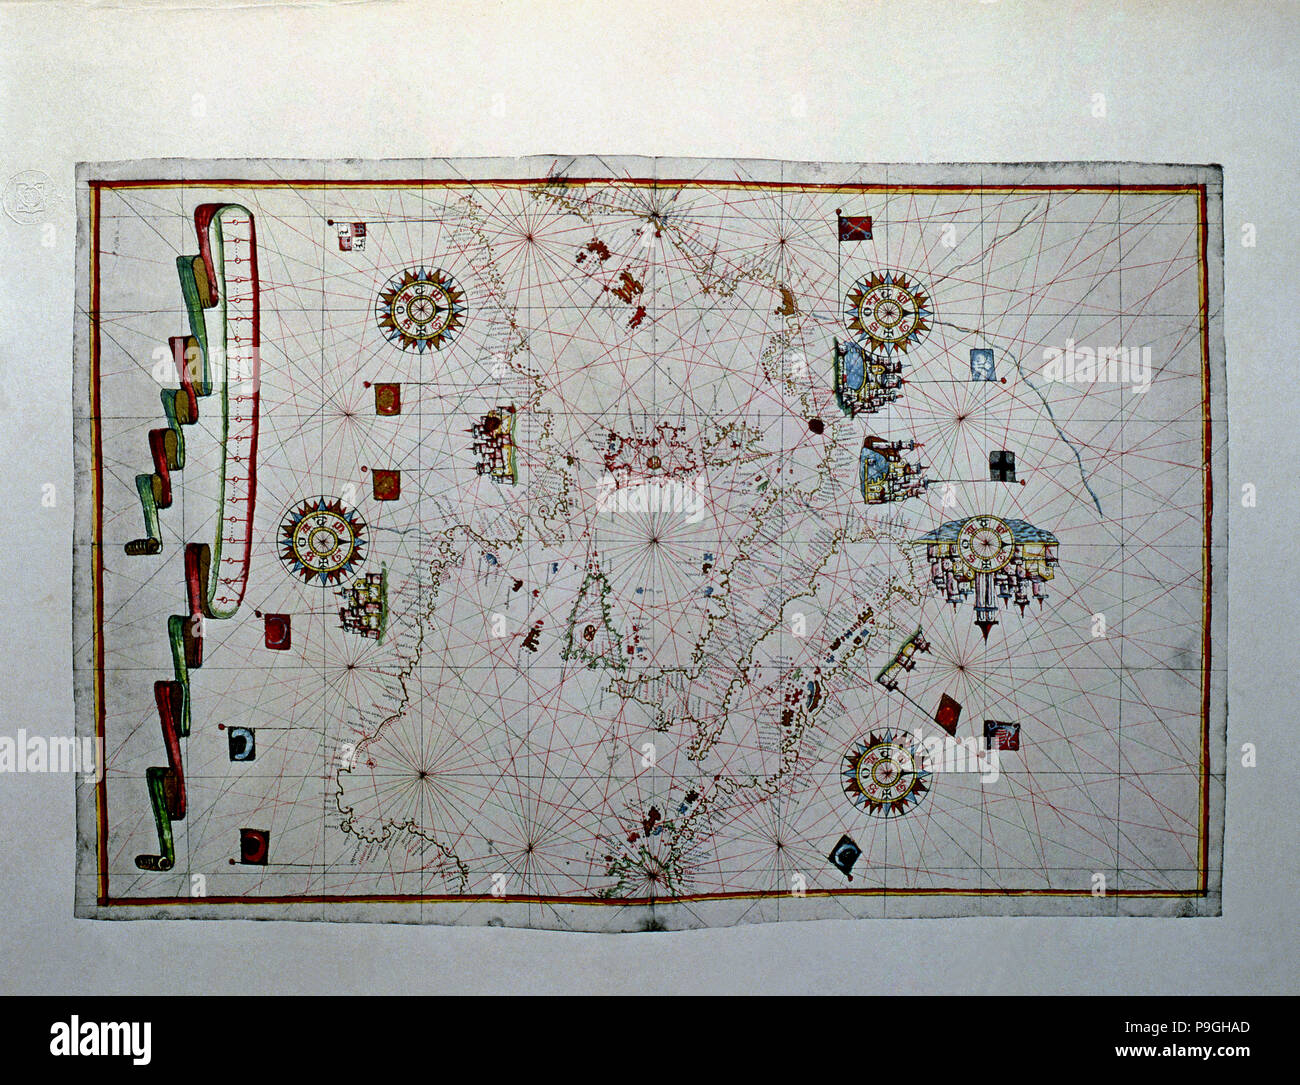 Atlas of Joan Martines, Messina, 1582. Portulan chart of the Mediterranean sea, with its islands,… Stock Photo